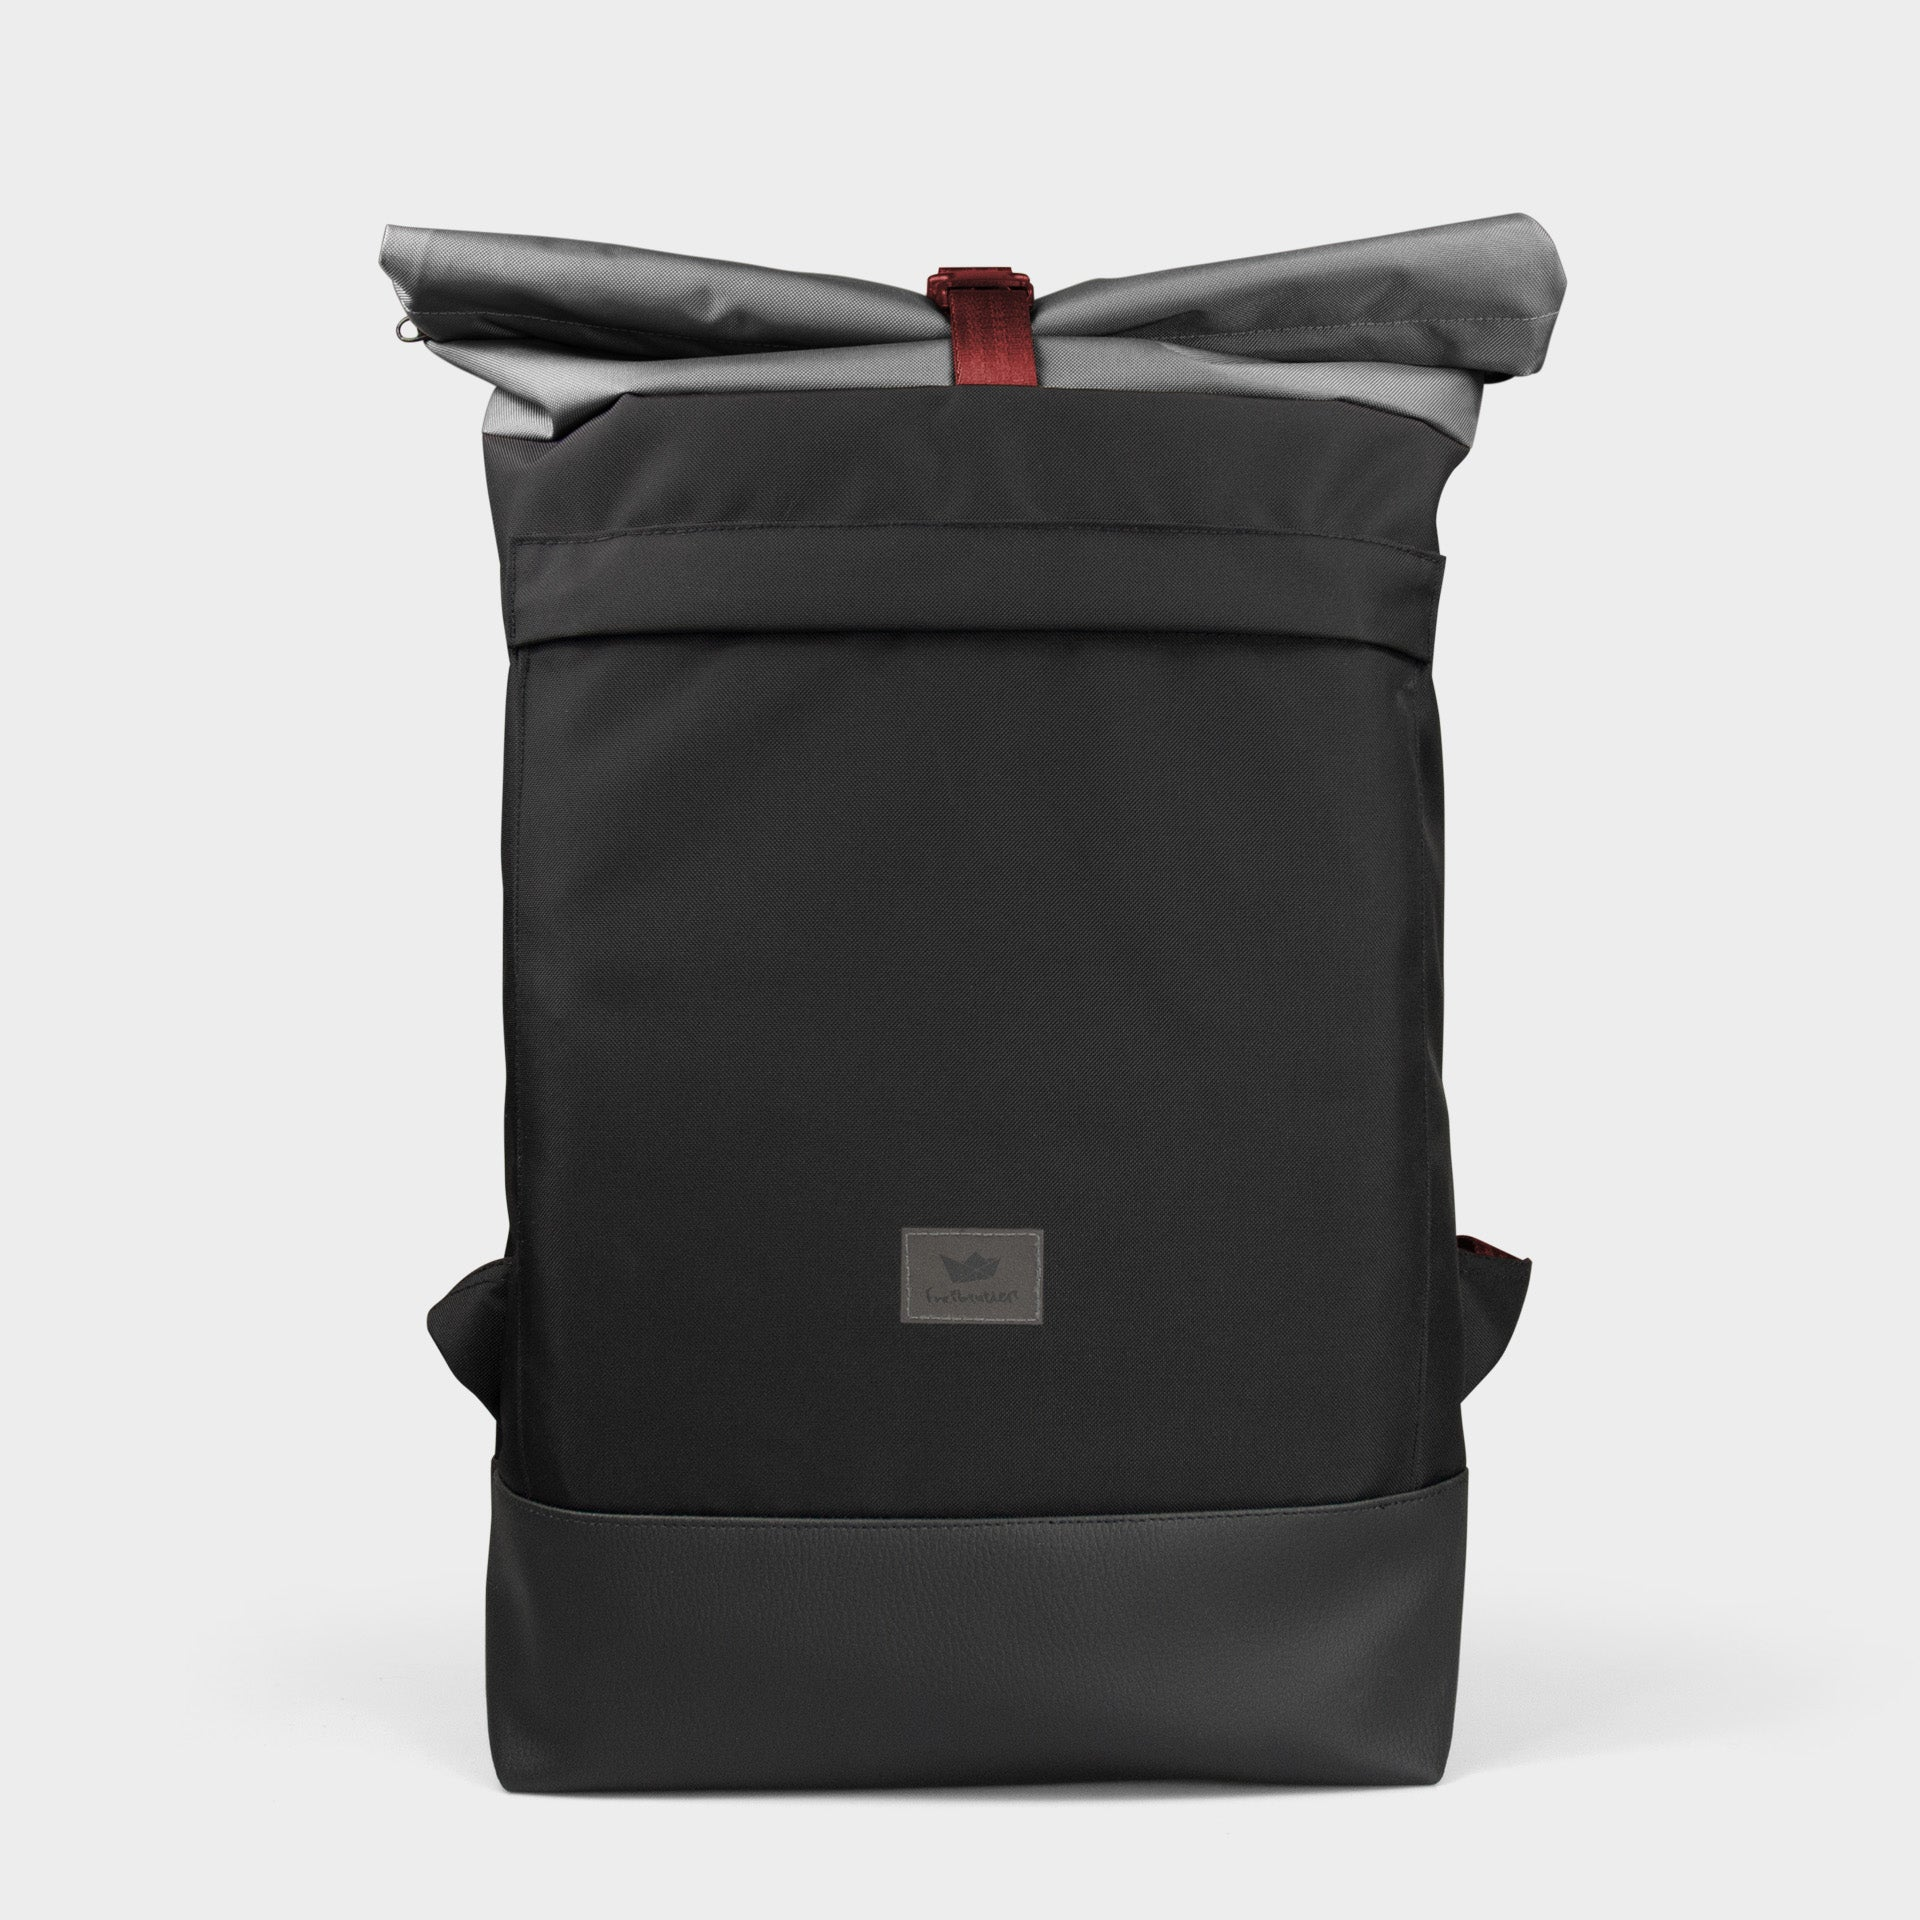 COURIER BAG – RED STRAP